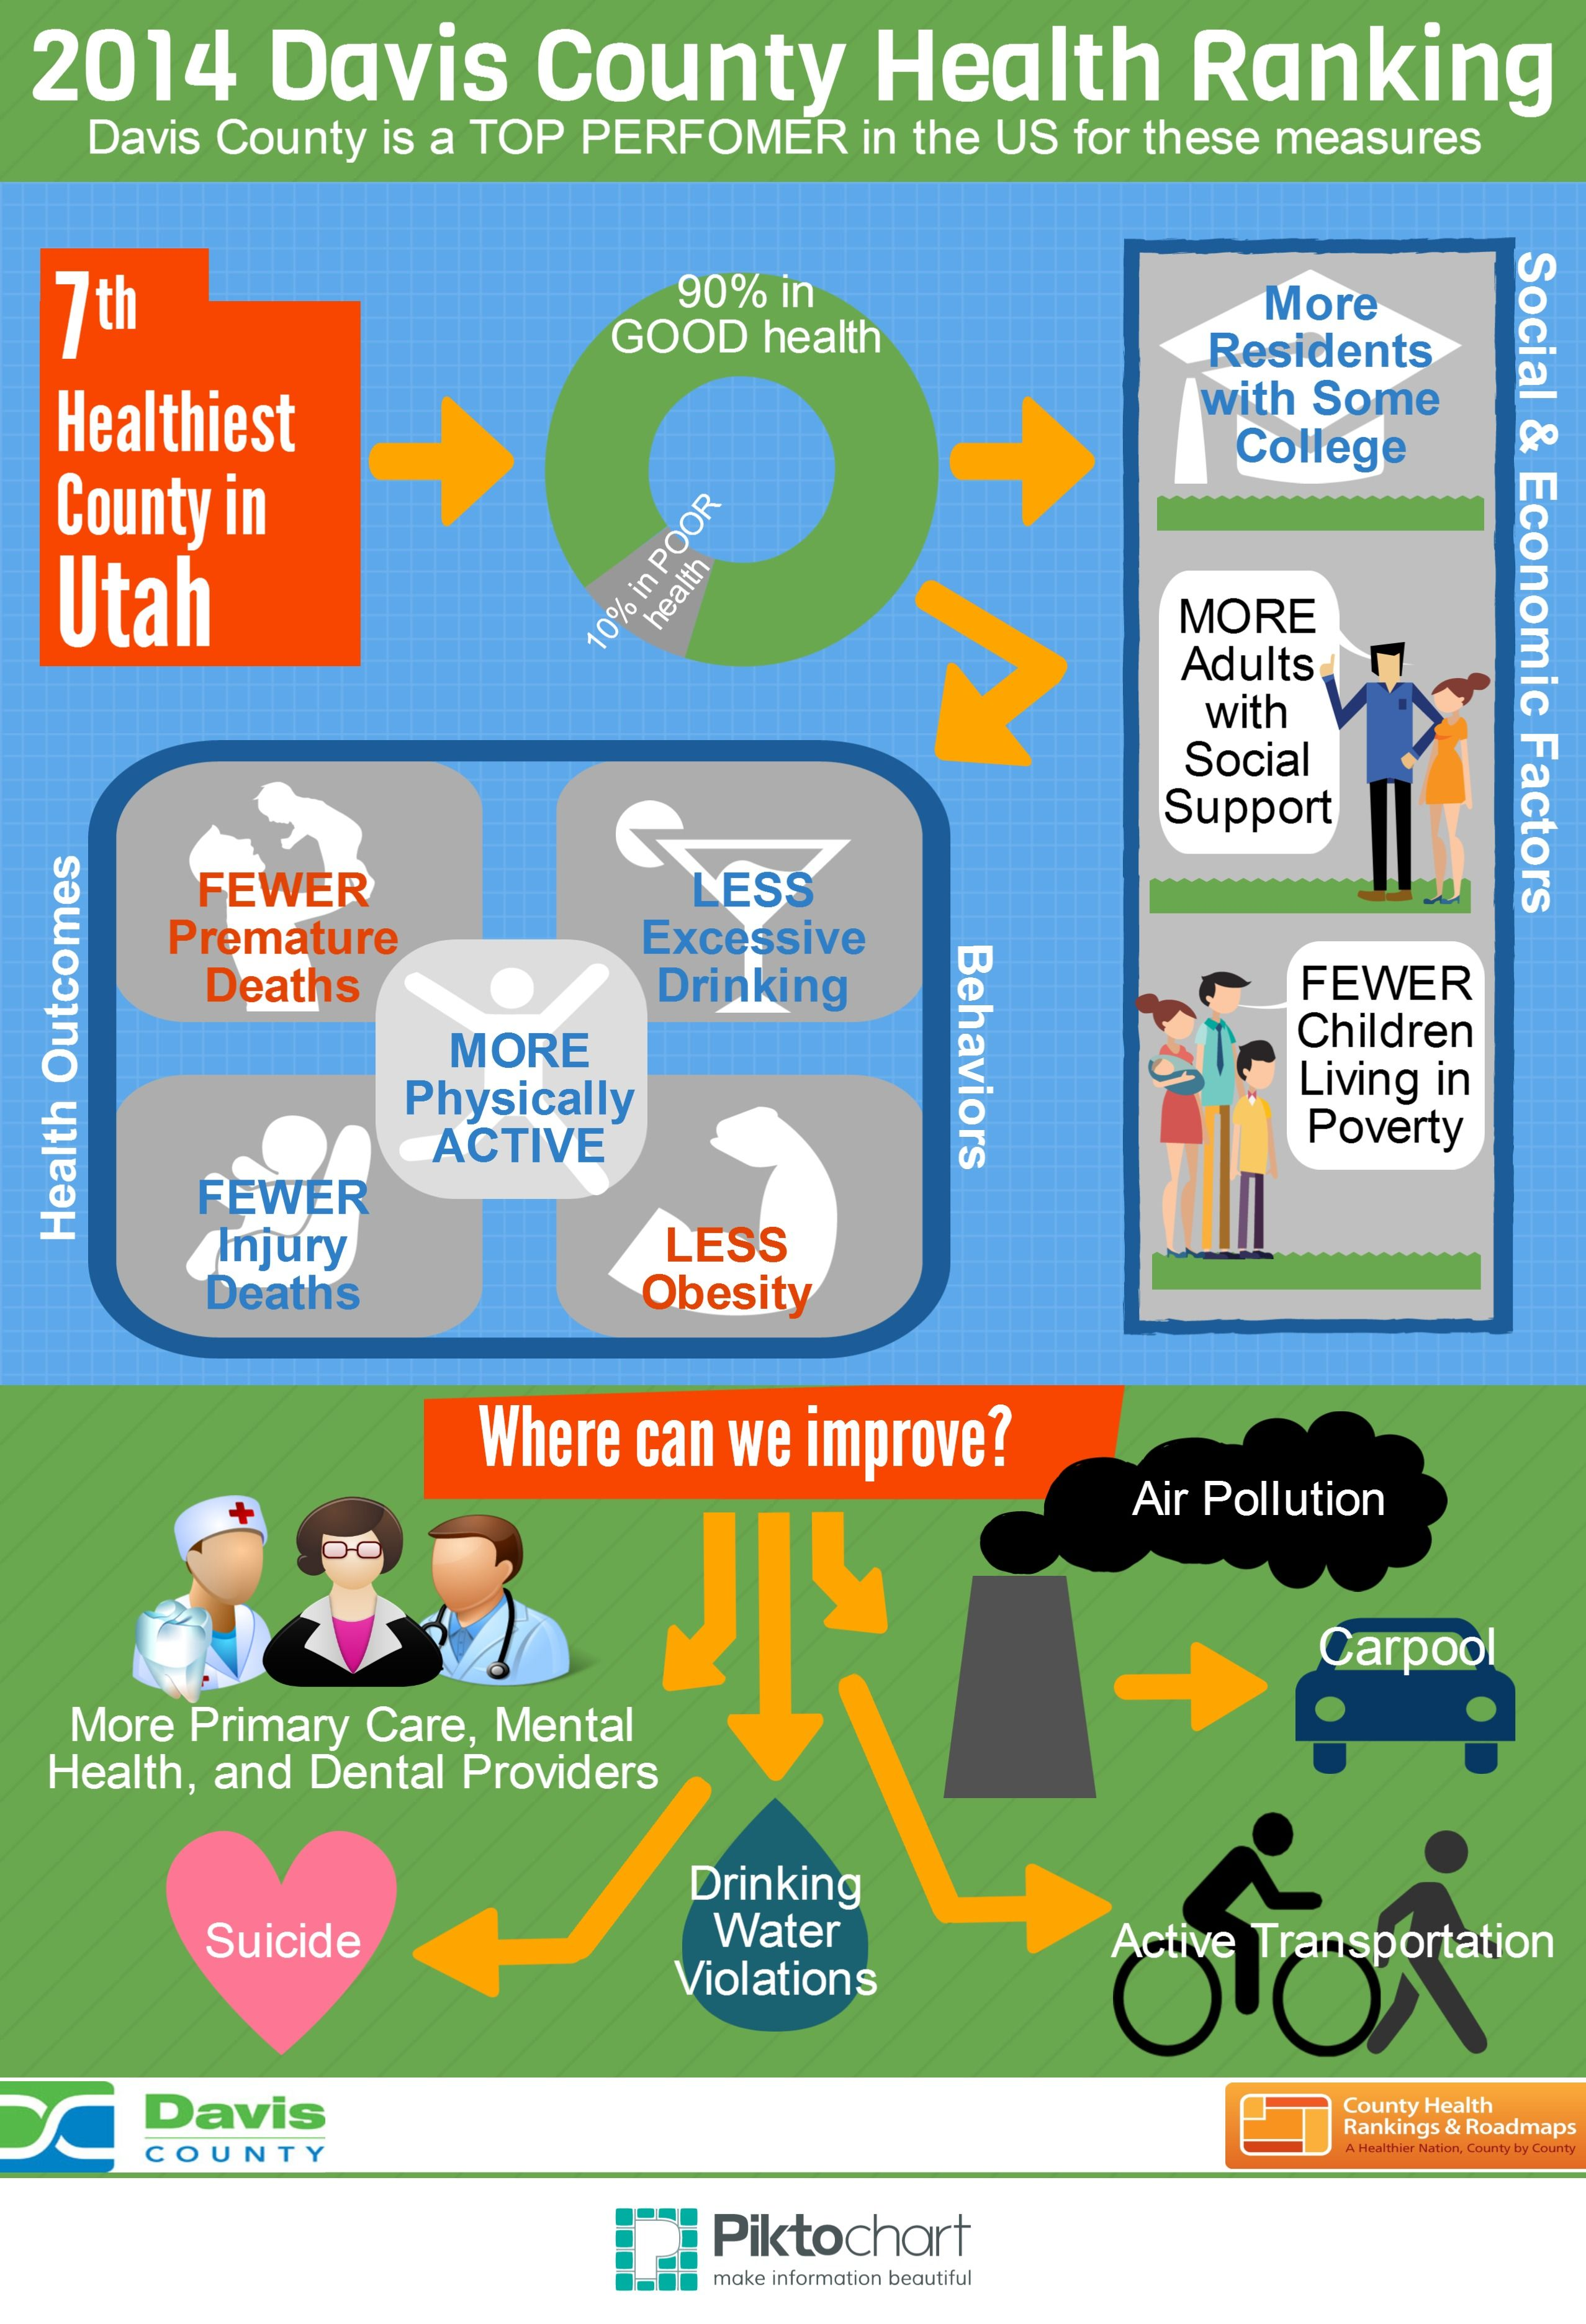 We Continue To Work With Partner Agencies To Make Positive Changes To Further Improve Health In Davis County Davis County Health Improve Health